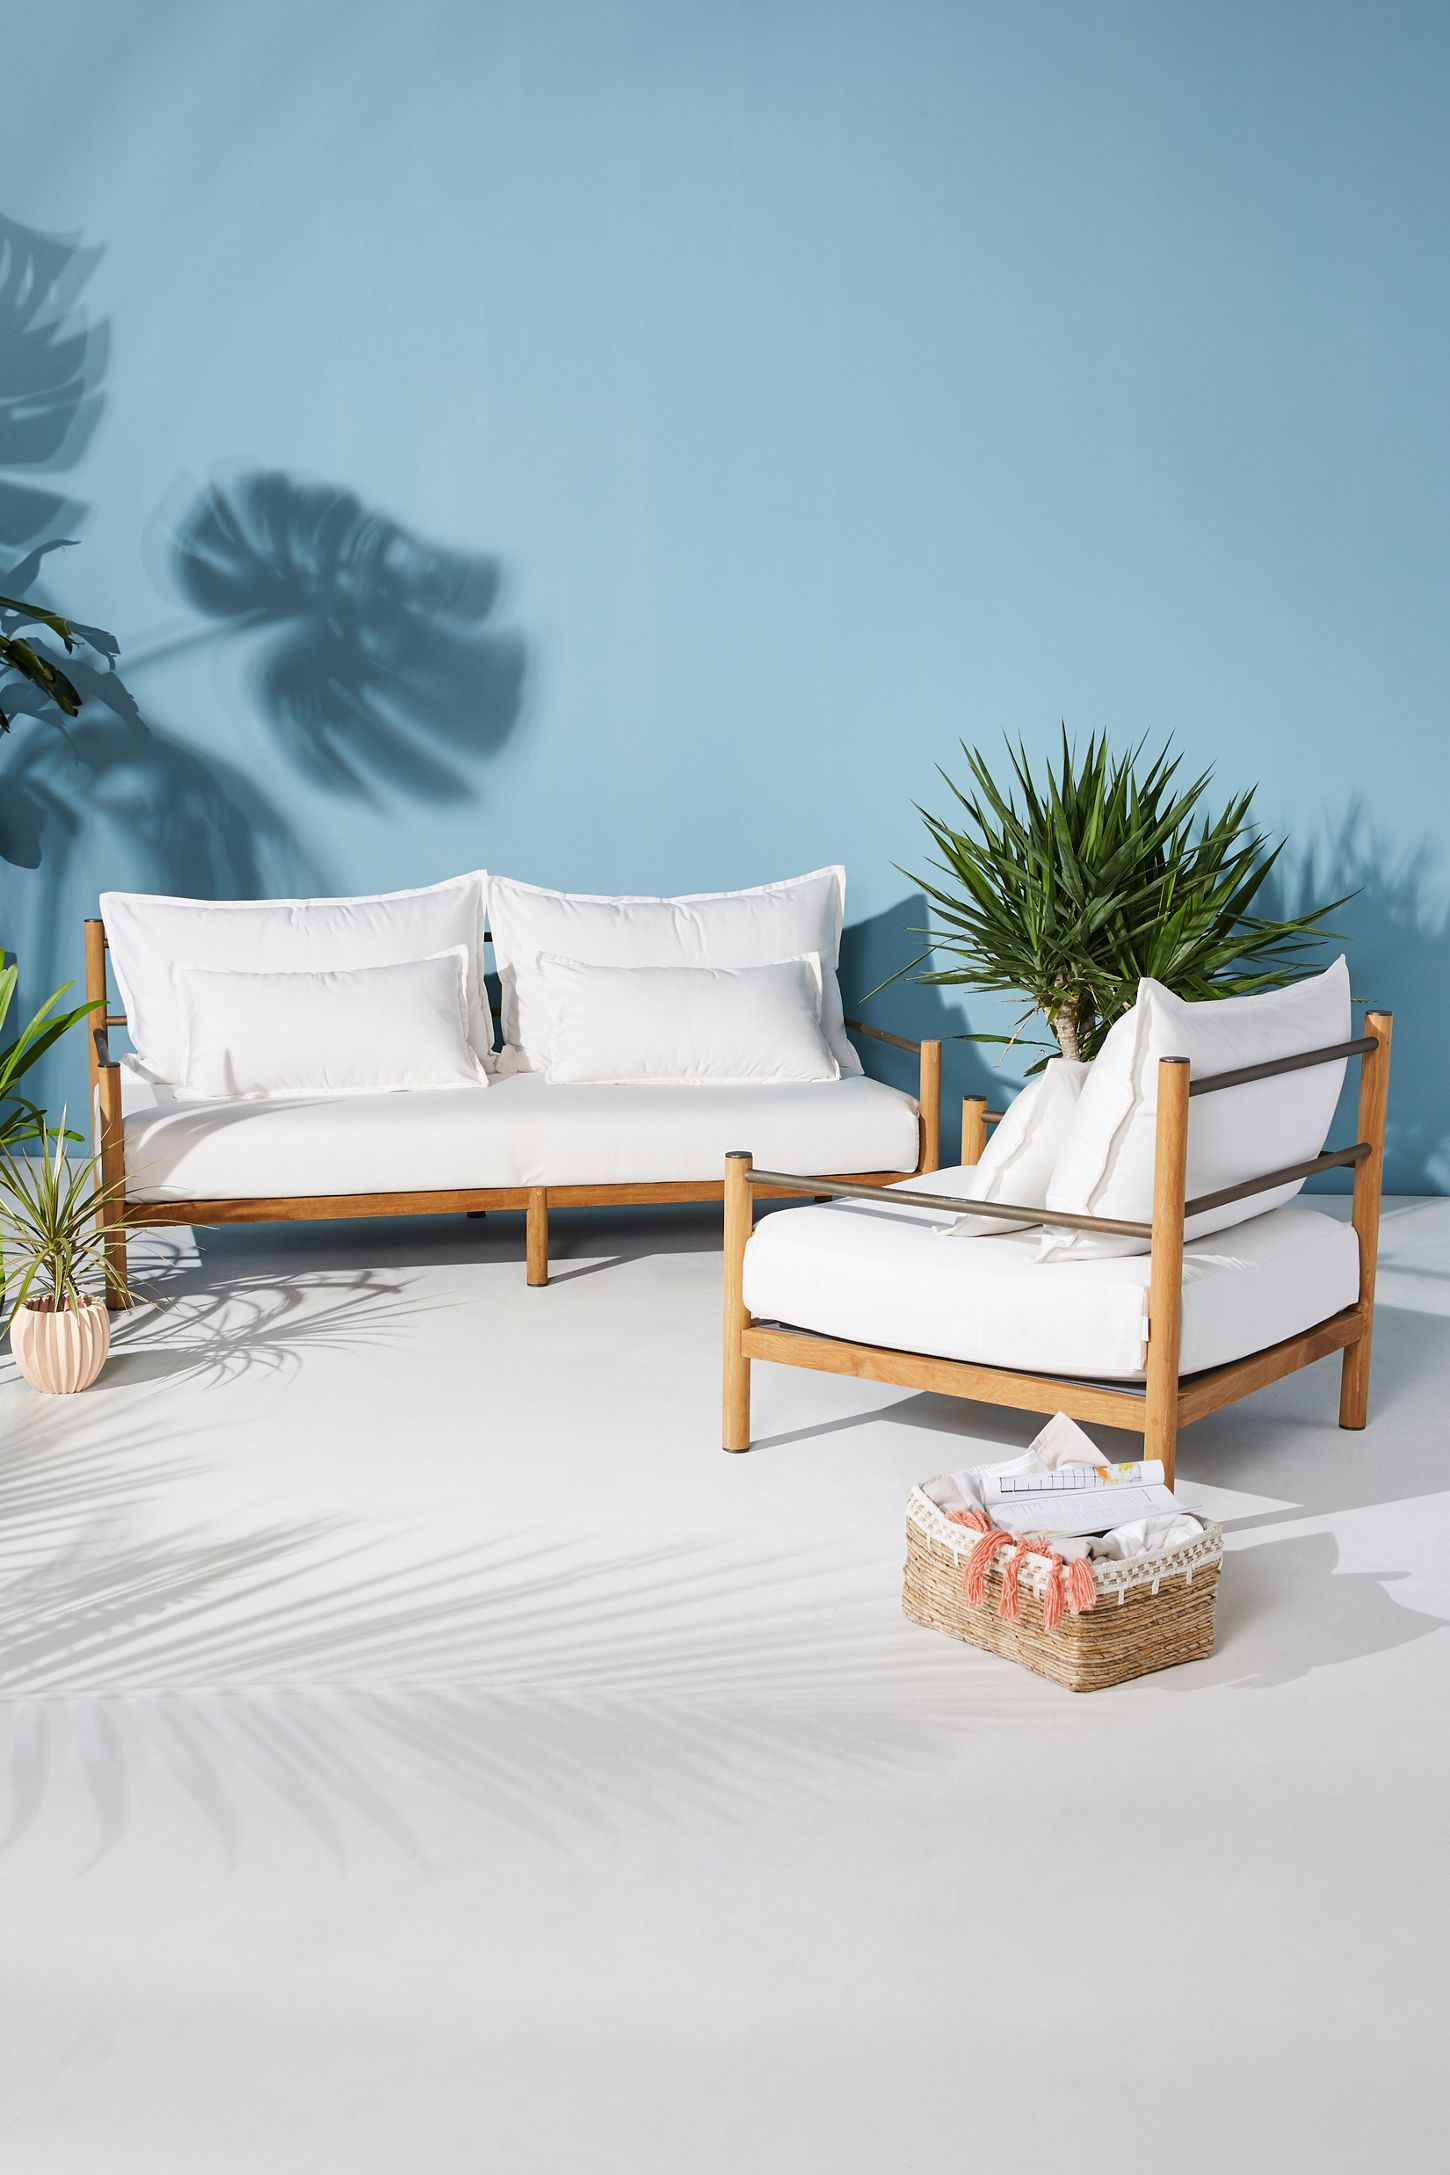 Alexandra Chair | Teak patio furniture, Indoor patio ...